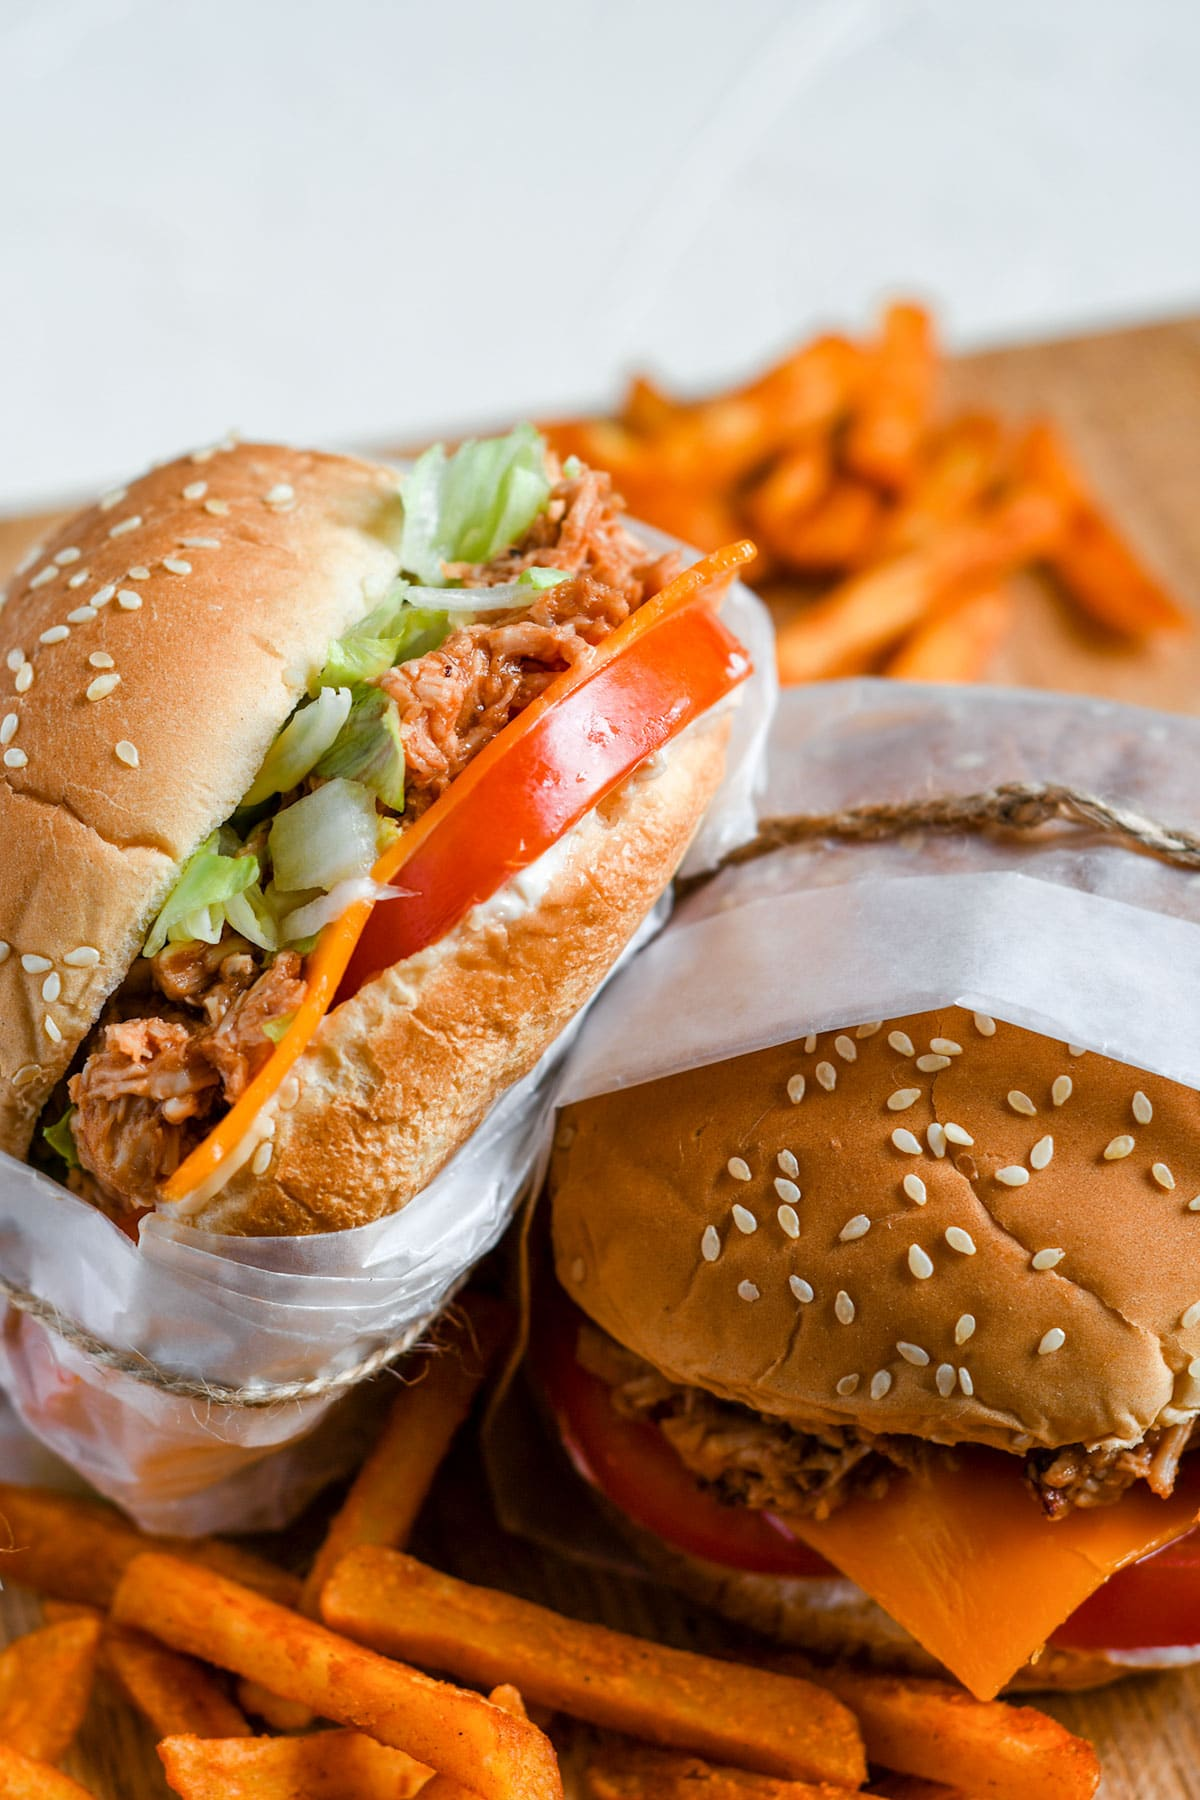 two shredded chicken sandwiches with lettuce, tomato, cheese, and sweet potato fries on the side.